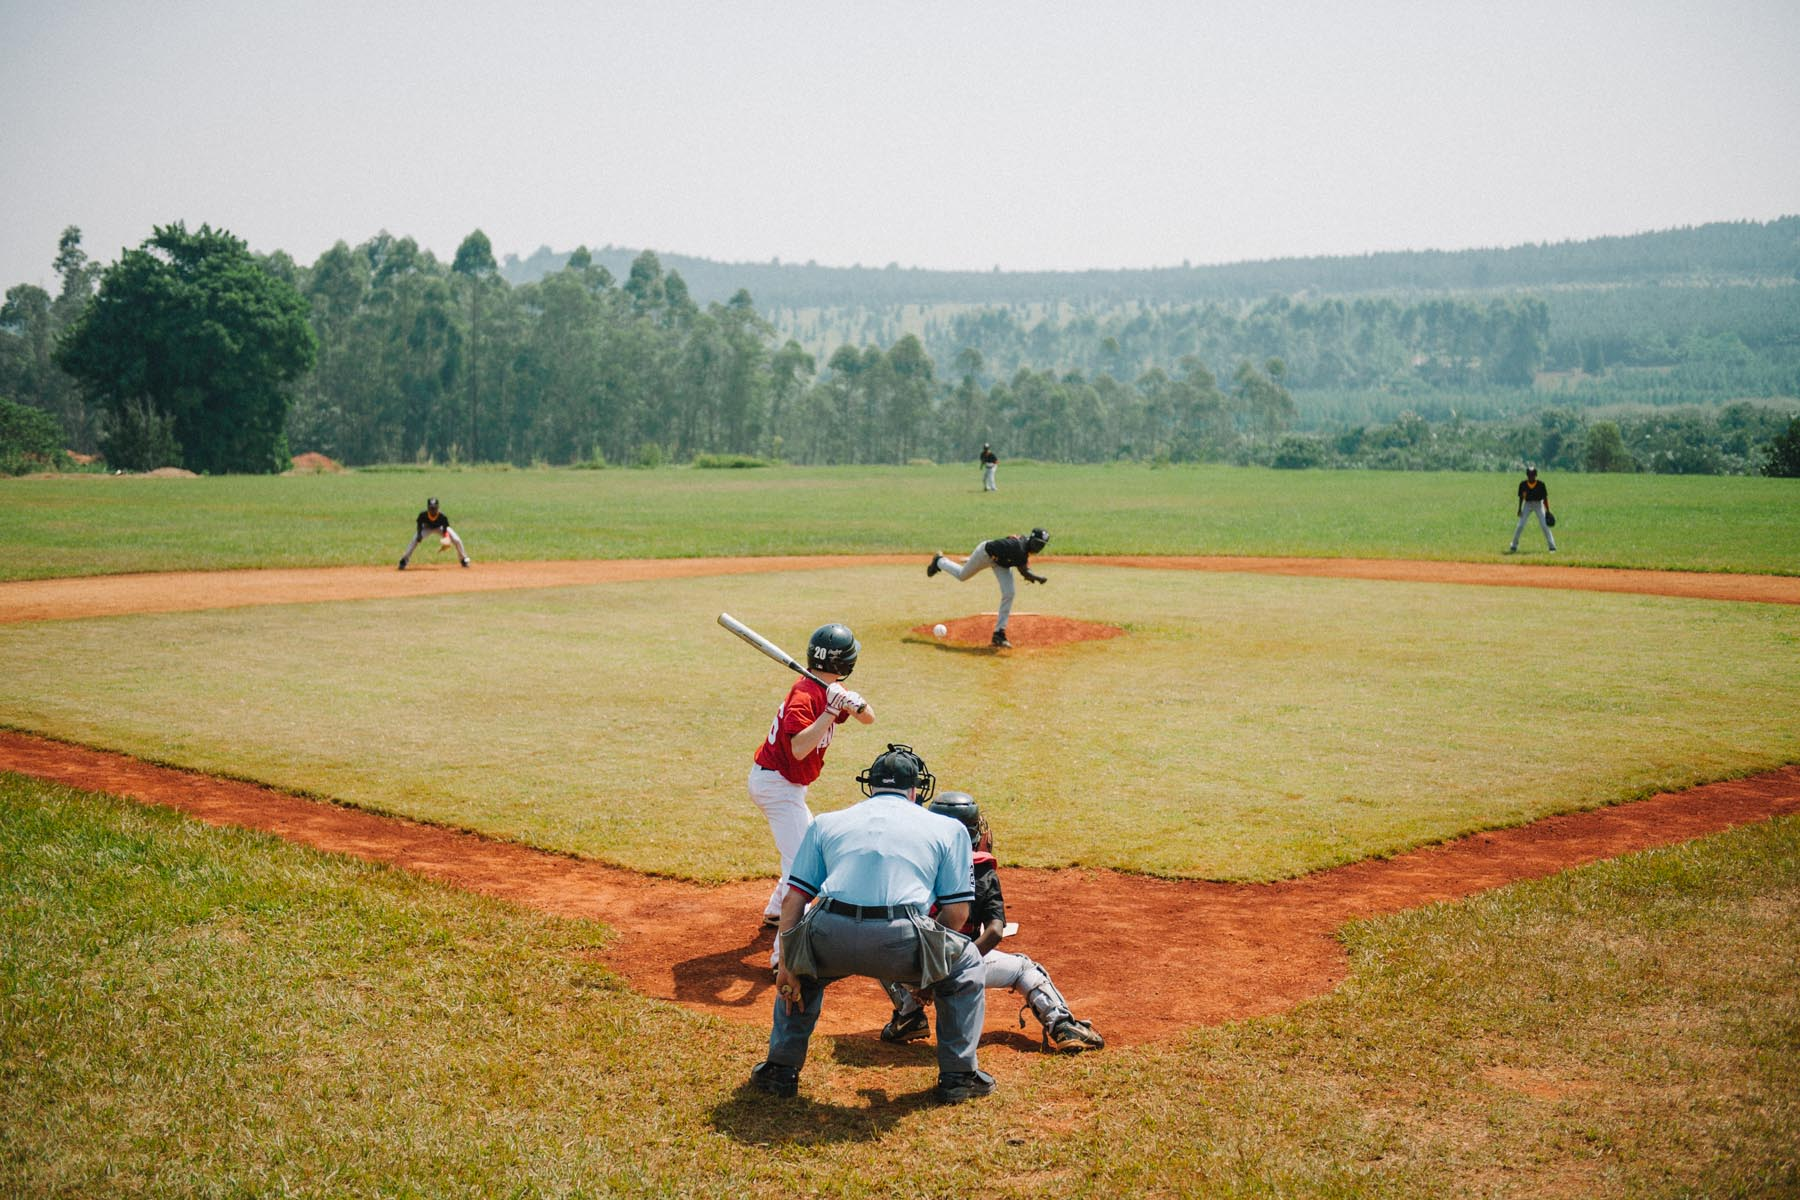 HKP-UgandaBaseball-Day4-0490.jpg